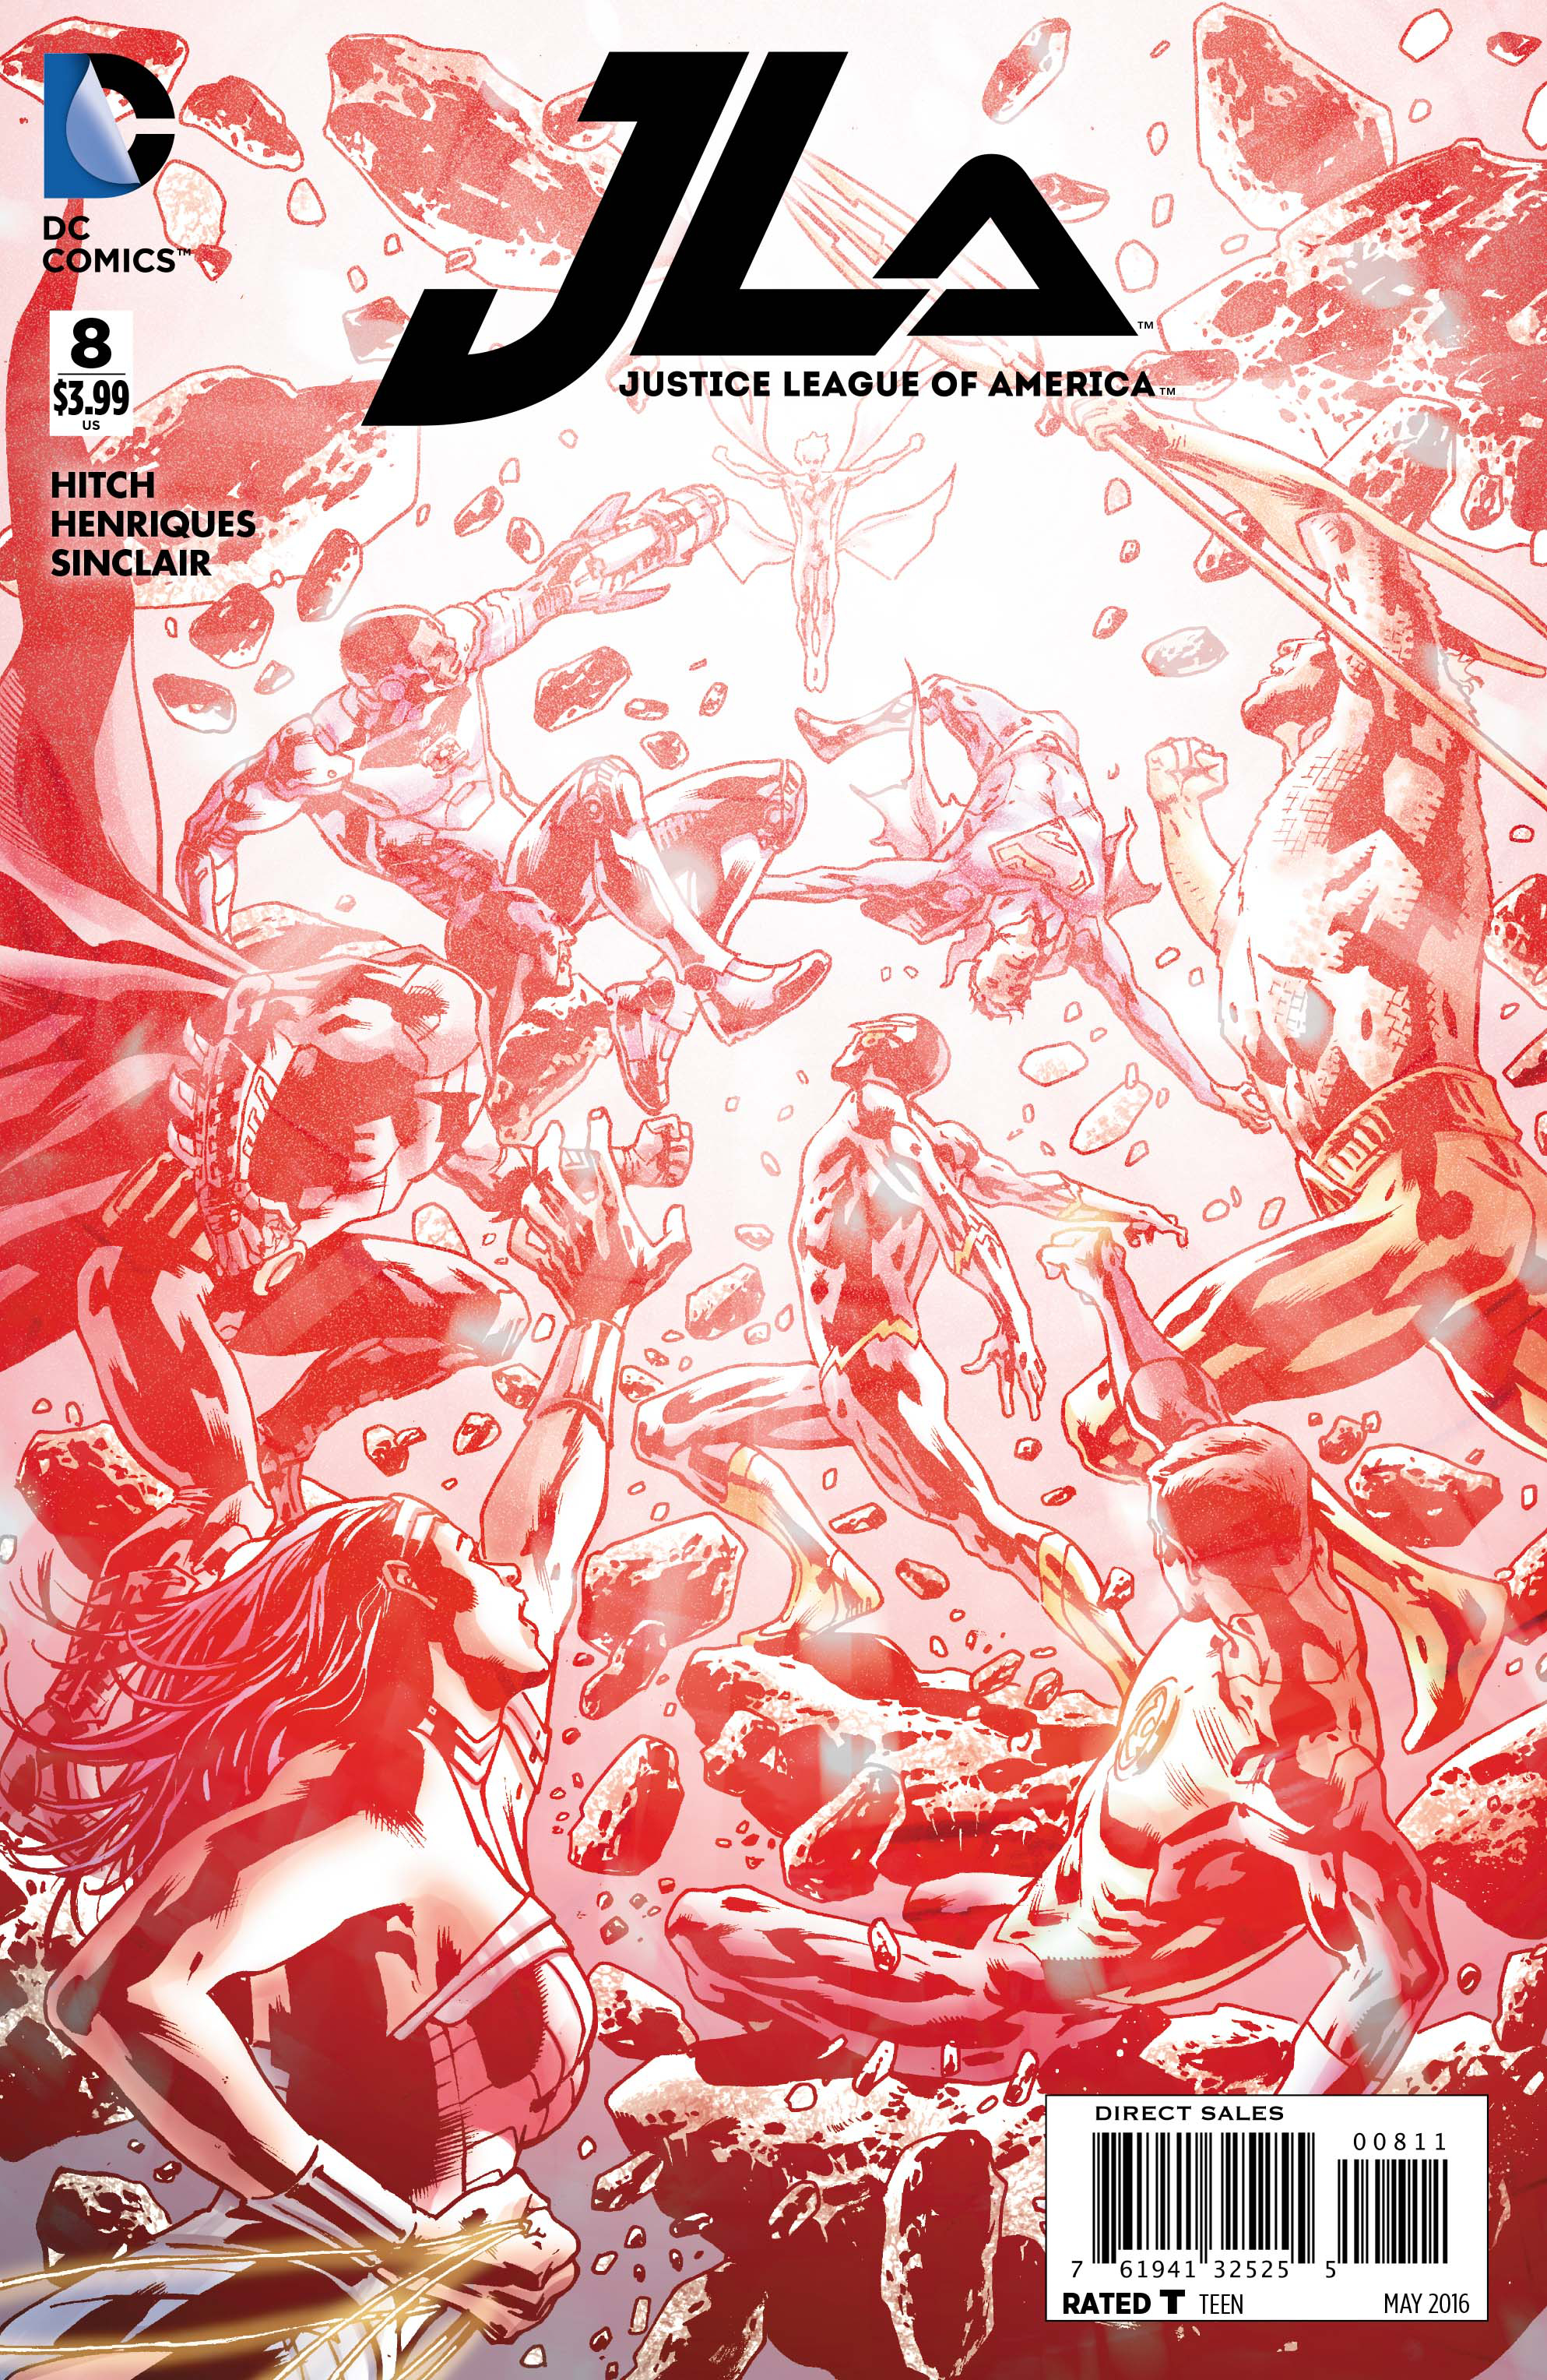 JUSTICE LEAGUE OF AMERICA #8